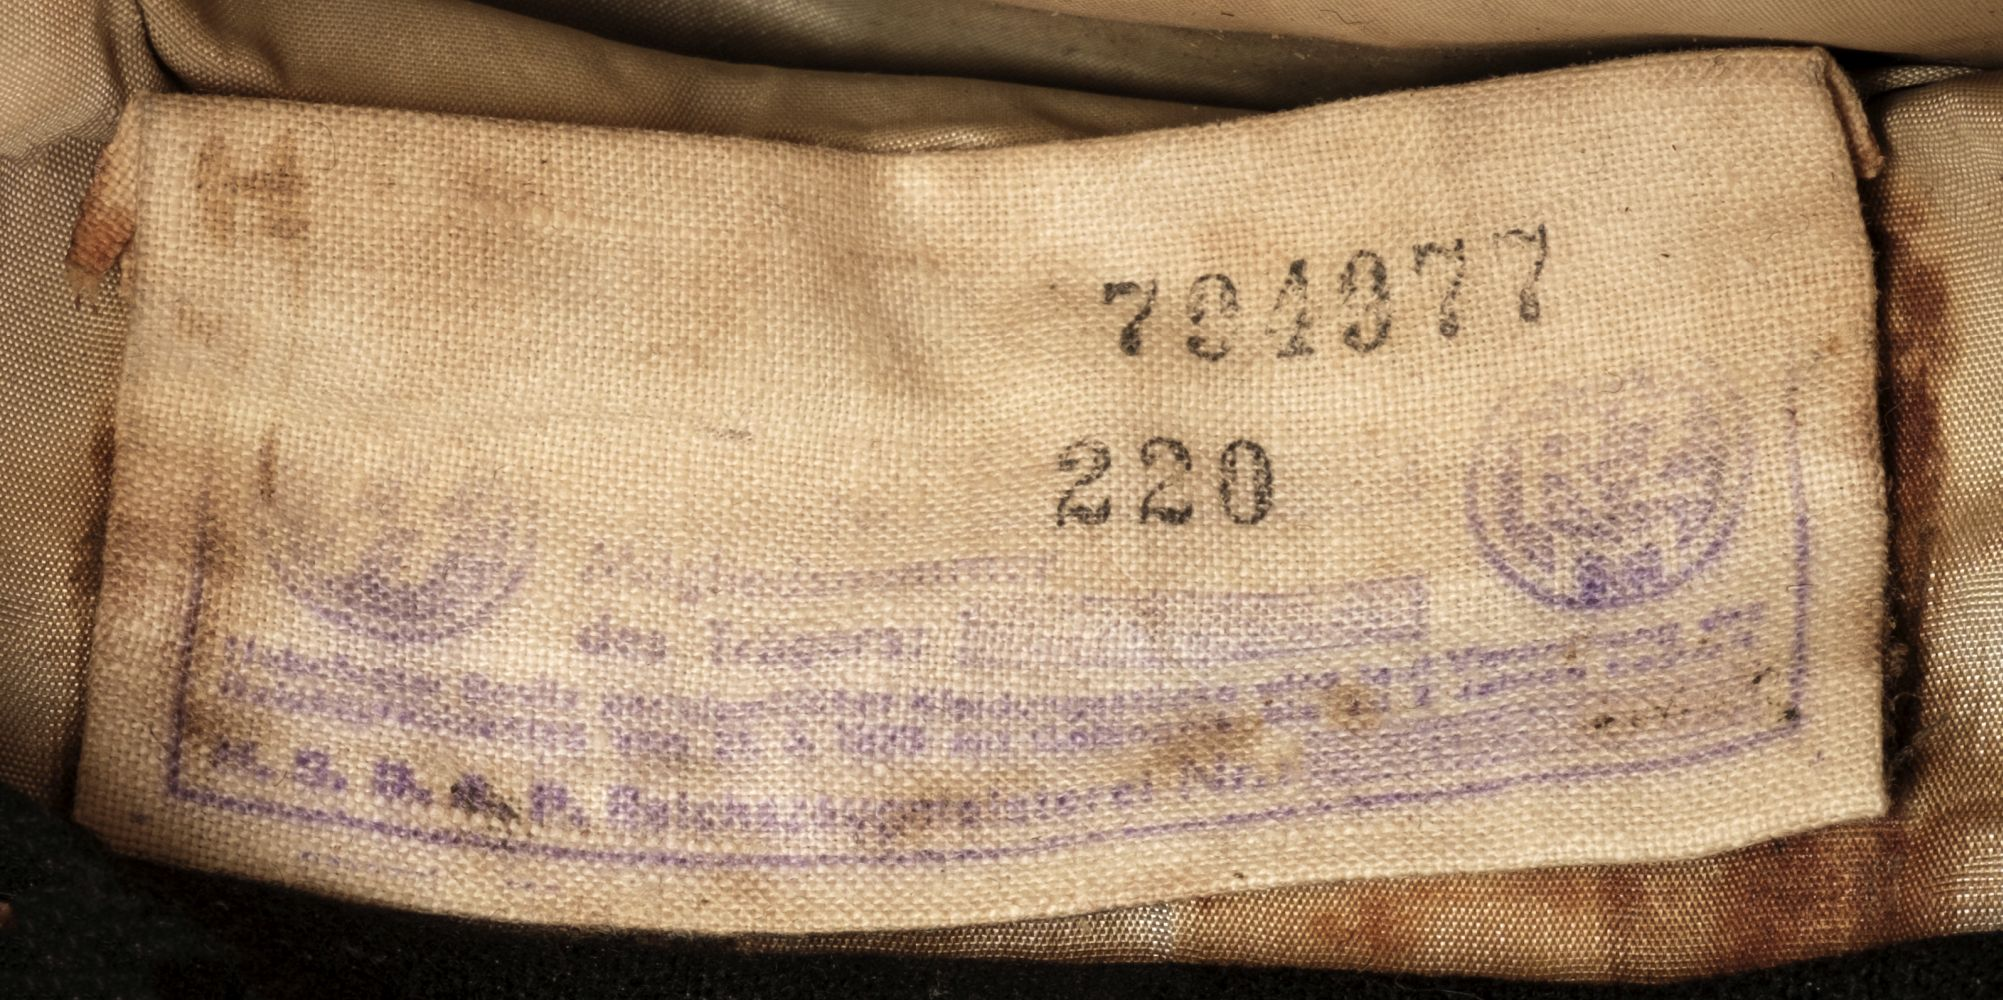 * Third Reich. WWII SS Officer's visor - Image 2 of 10